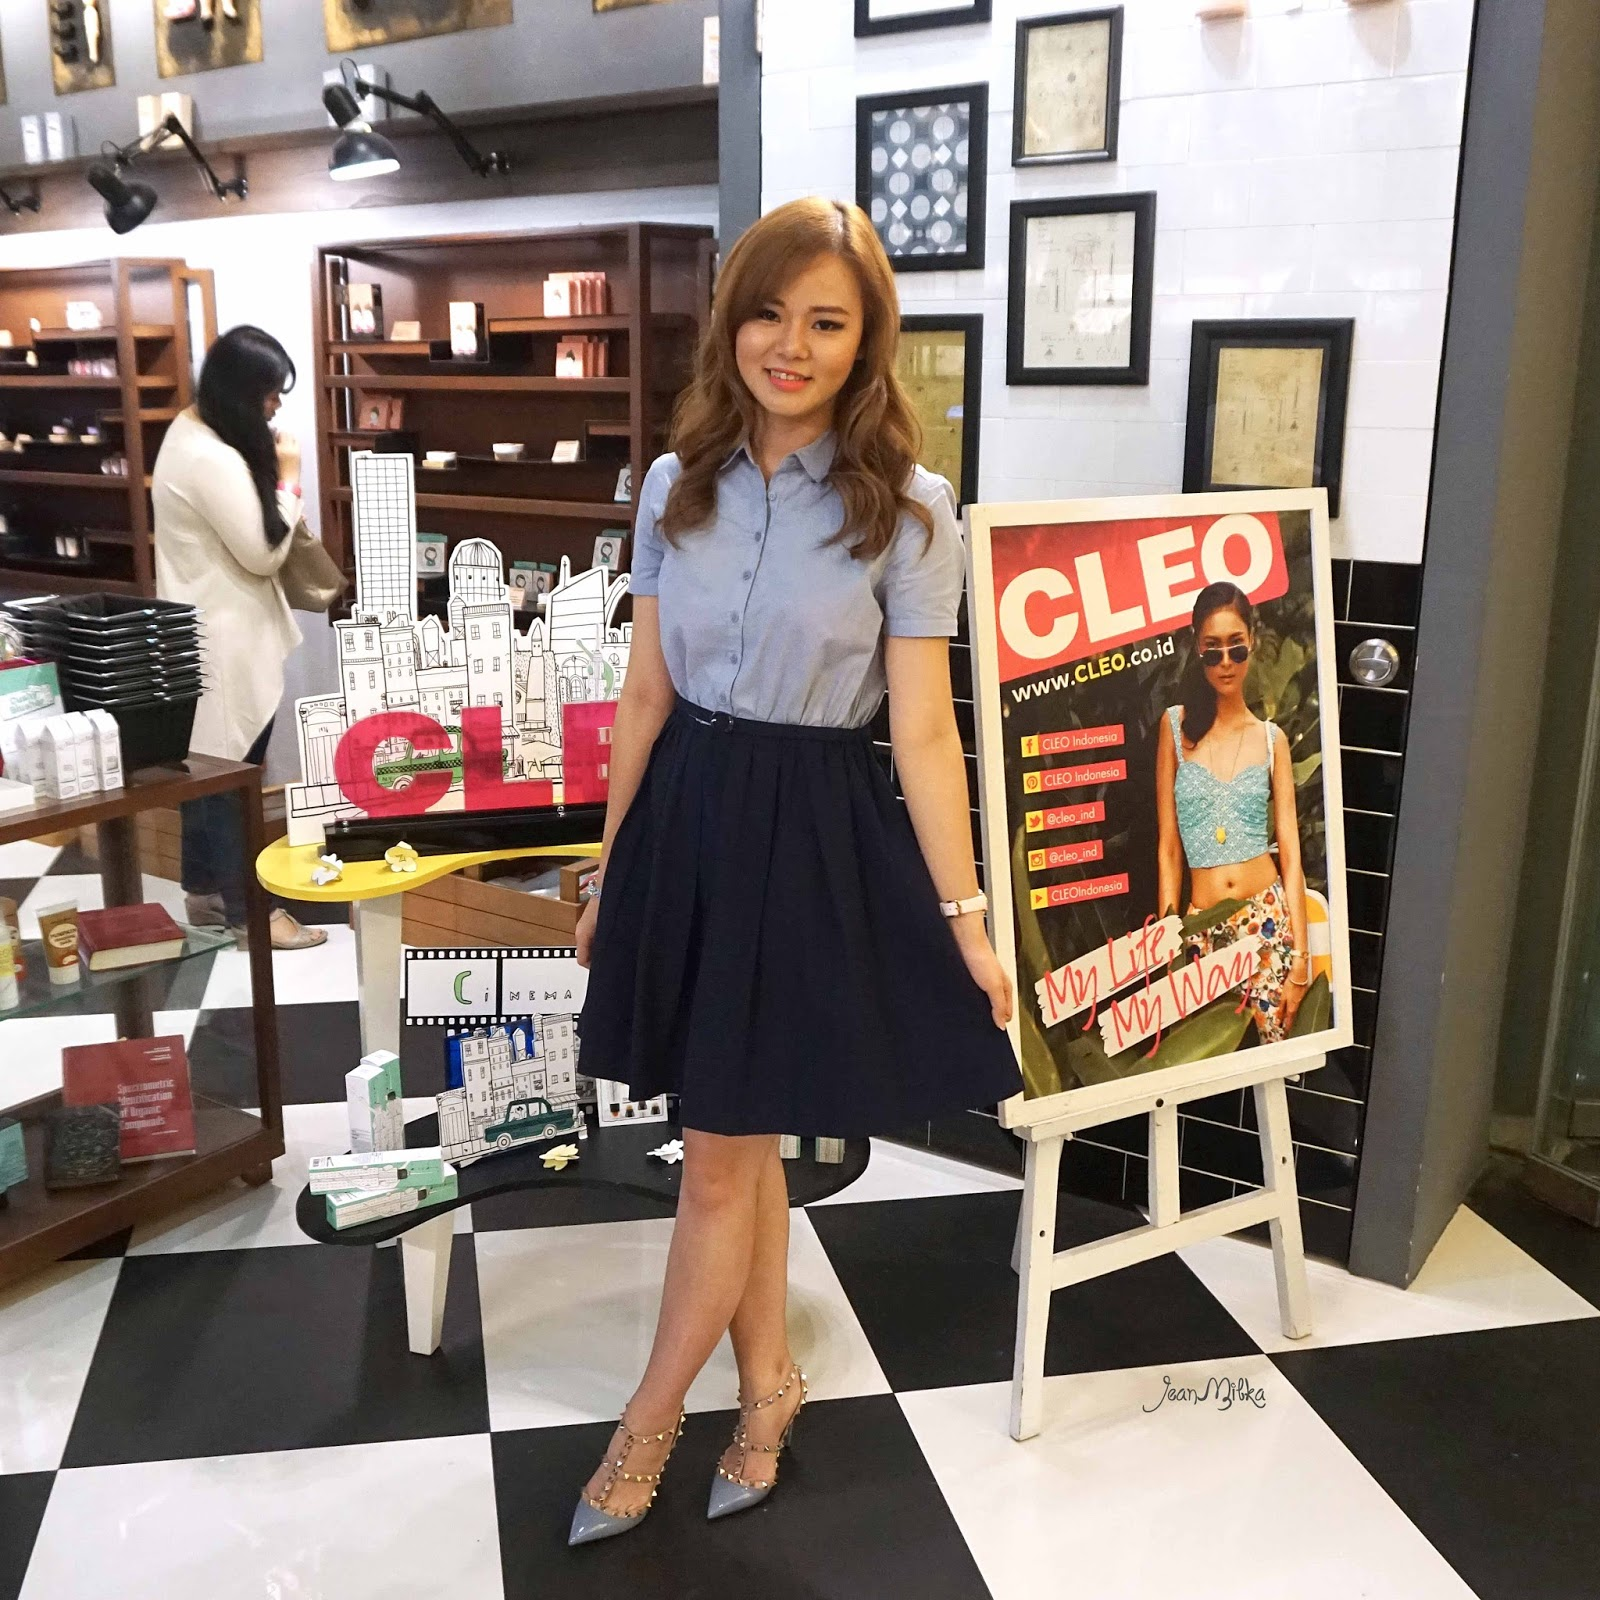 jean milka, too cool for school, cleo, magazine, majalah, event